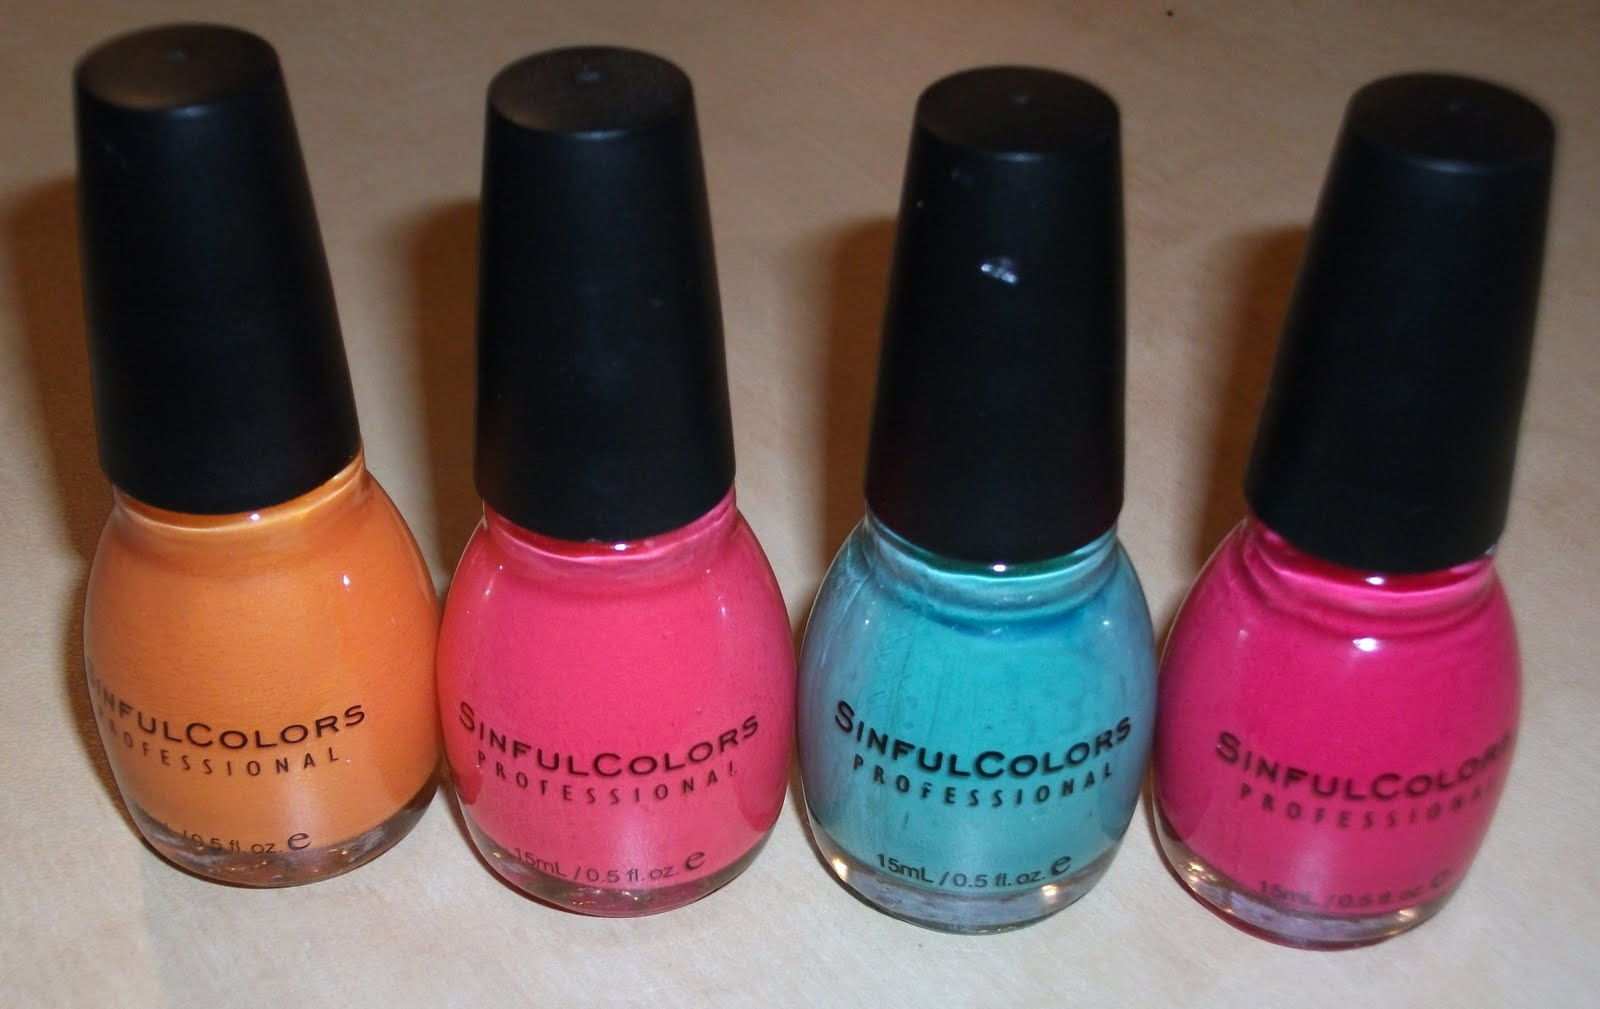 Cheapalicious 4 5 Sinful Colors Nail Polish At Walgreens